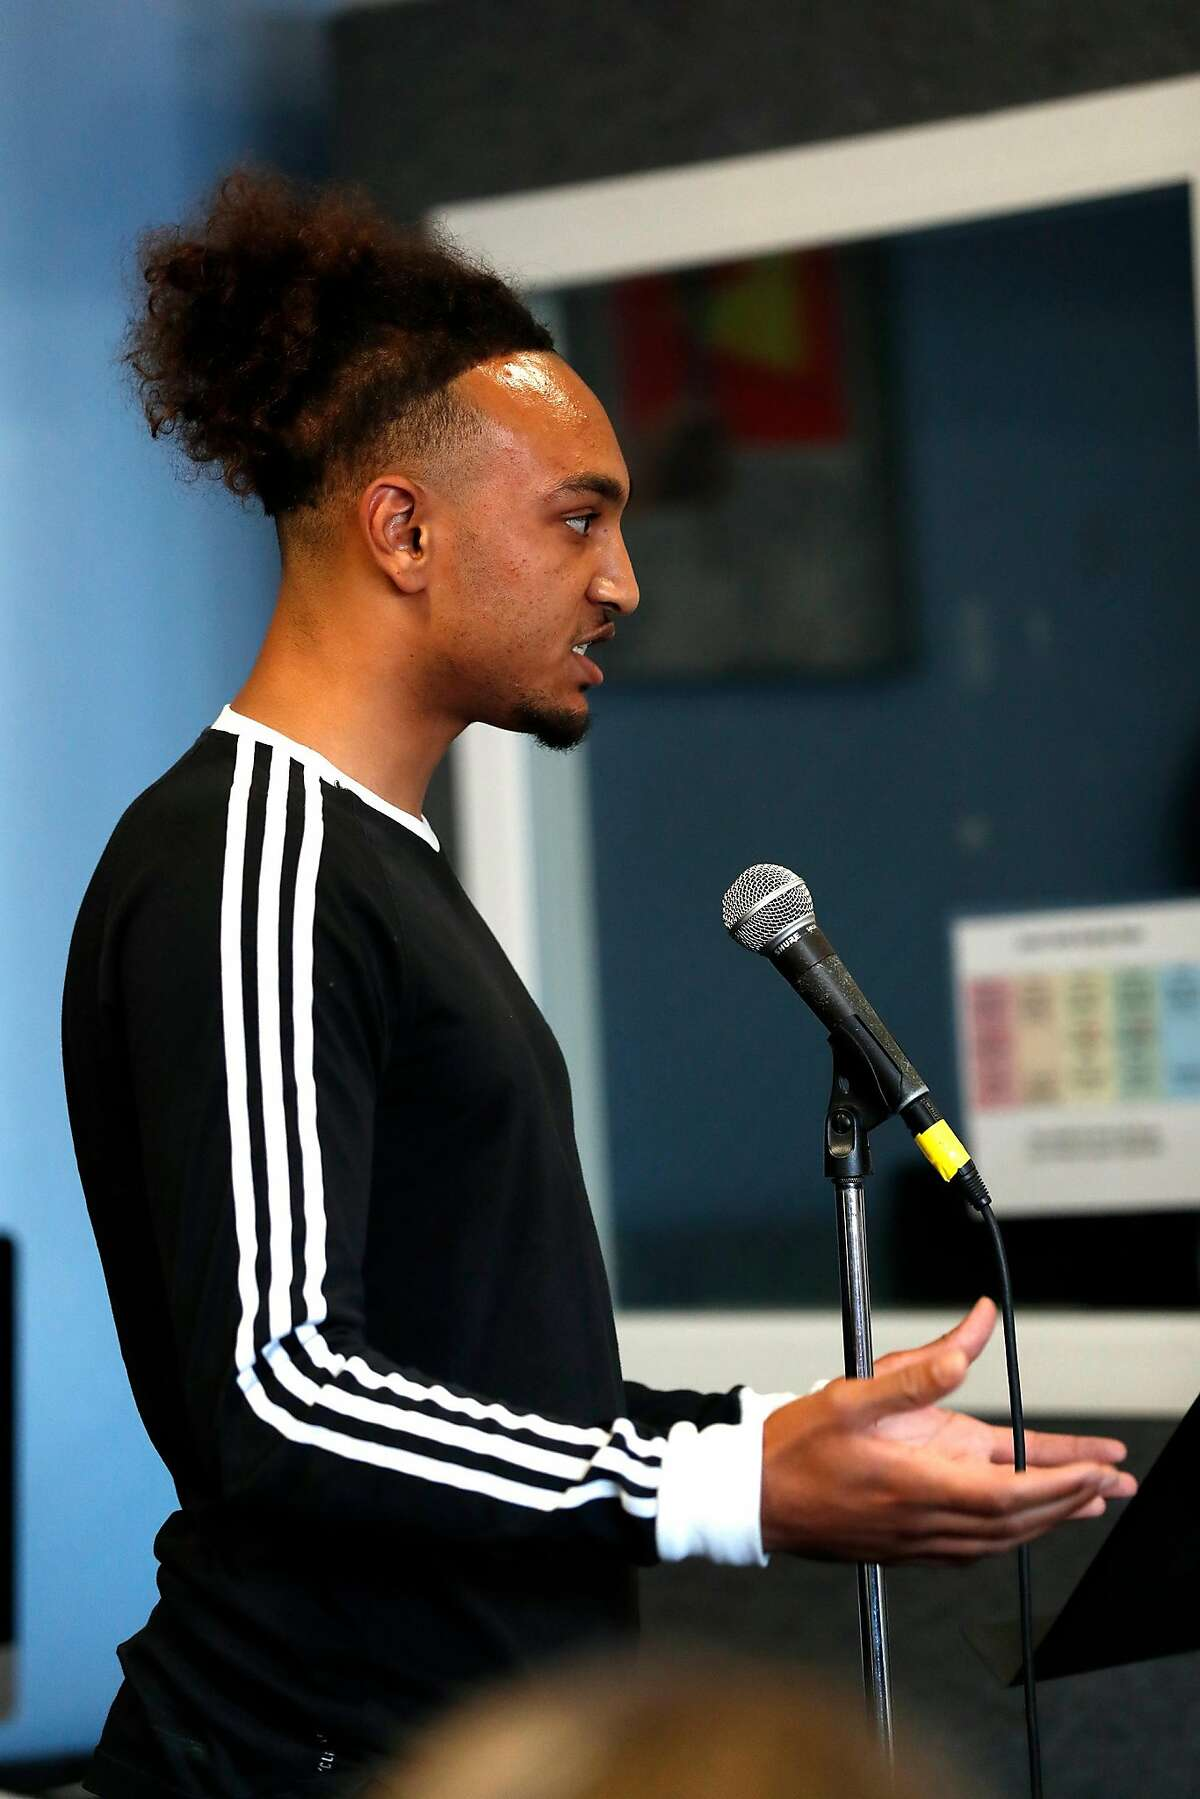 Community member Joseph Robinson addresses Juvenile Justice Commission during meeting in San Francisco, Calif., on Wednesday, September 11, 2019.